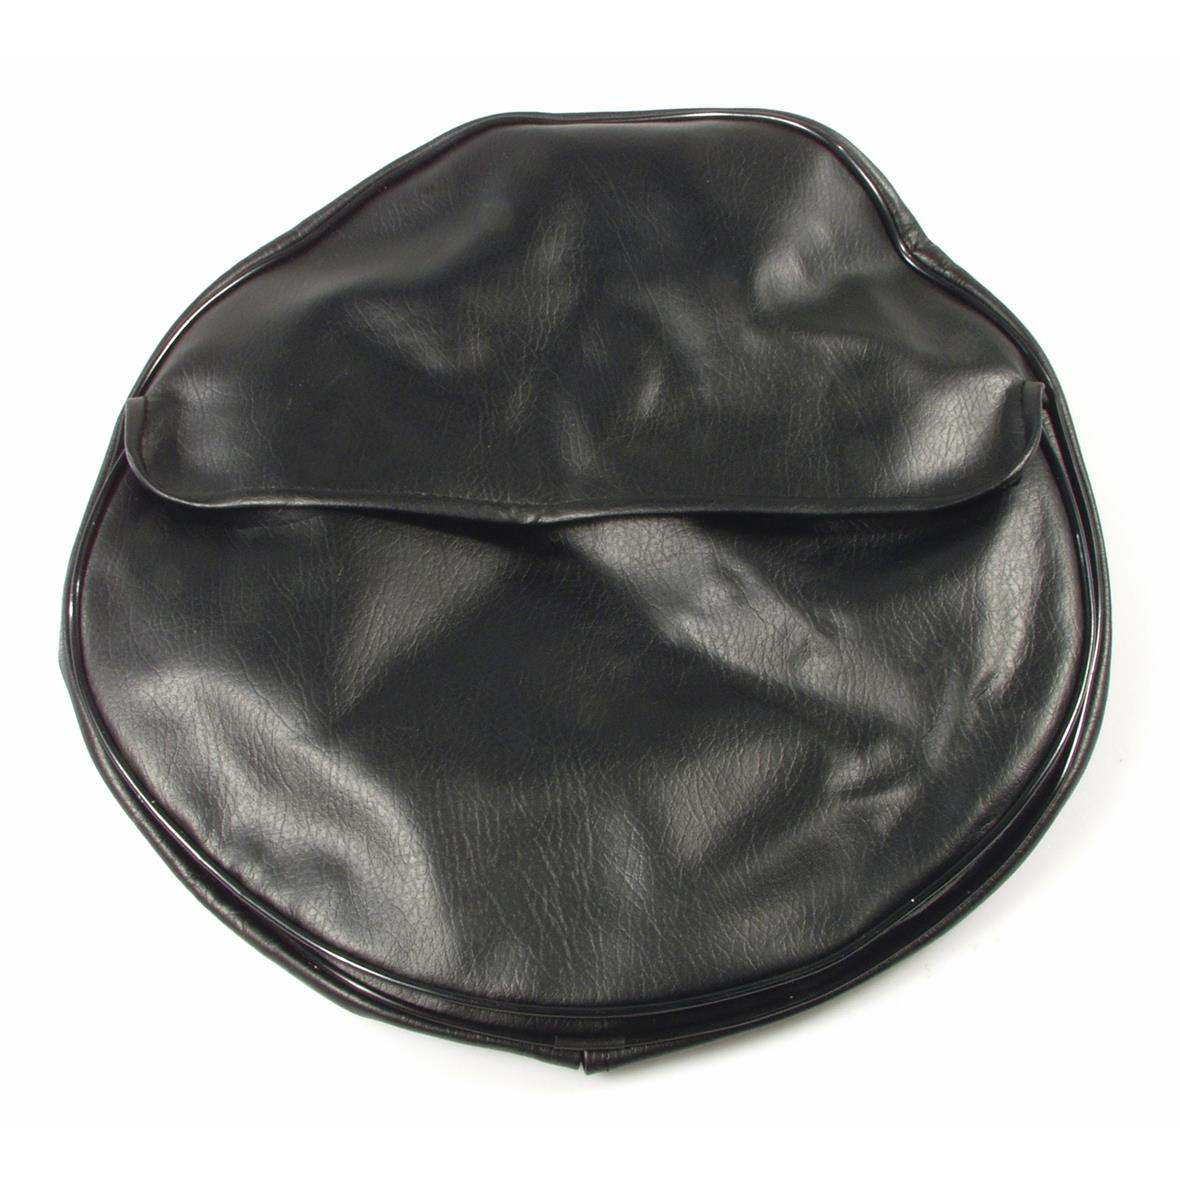 10/Tyre for Vespa PX80/200/PE Lusso T5/Plastic Filter Dust Guard Dustproof Mesh Black Without Screw Spare Wheel Cover Side Cover